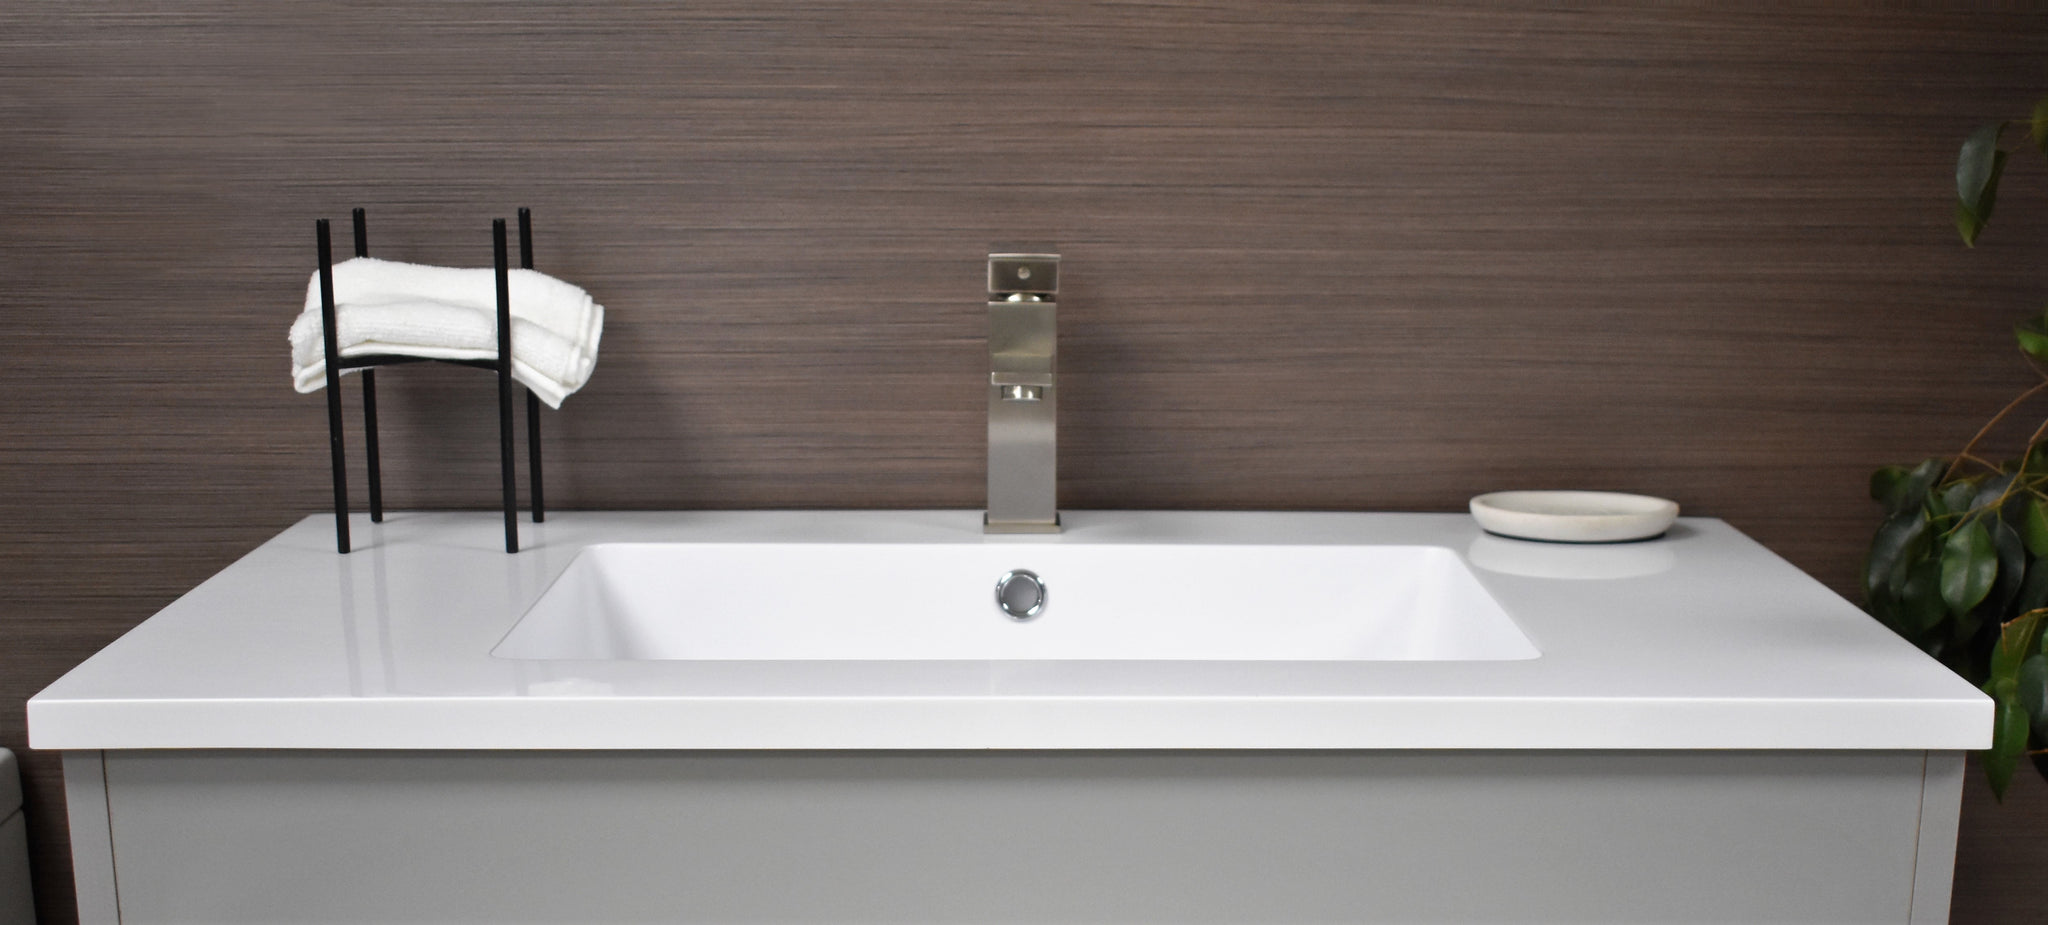 "Rio 36"" Modern Bathroom Vanity in Grey with Acrylic Top and Brushed Nickel Handles"